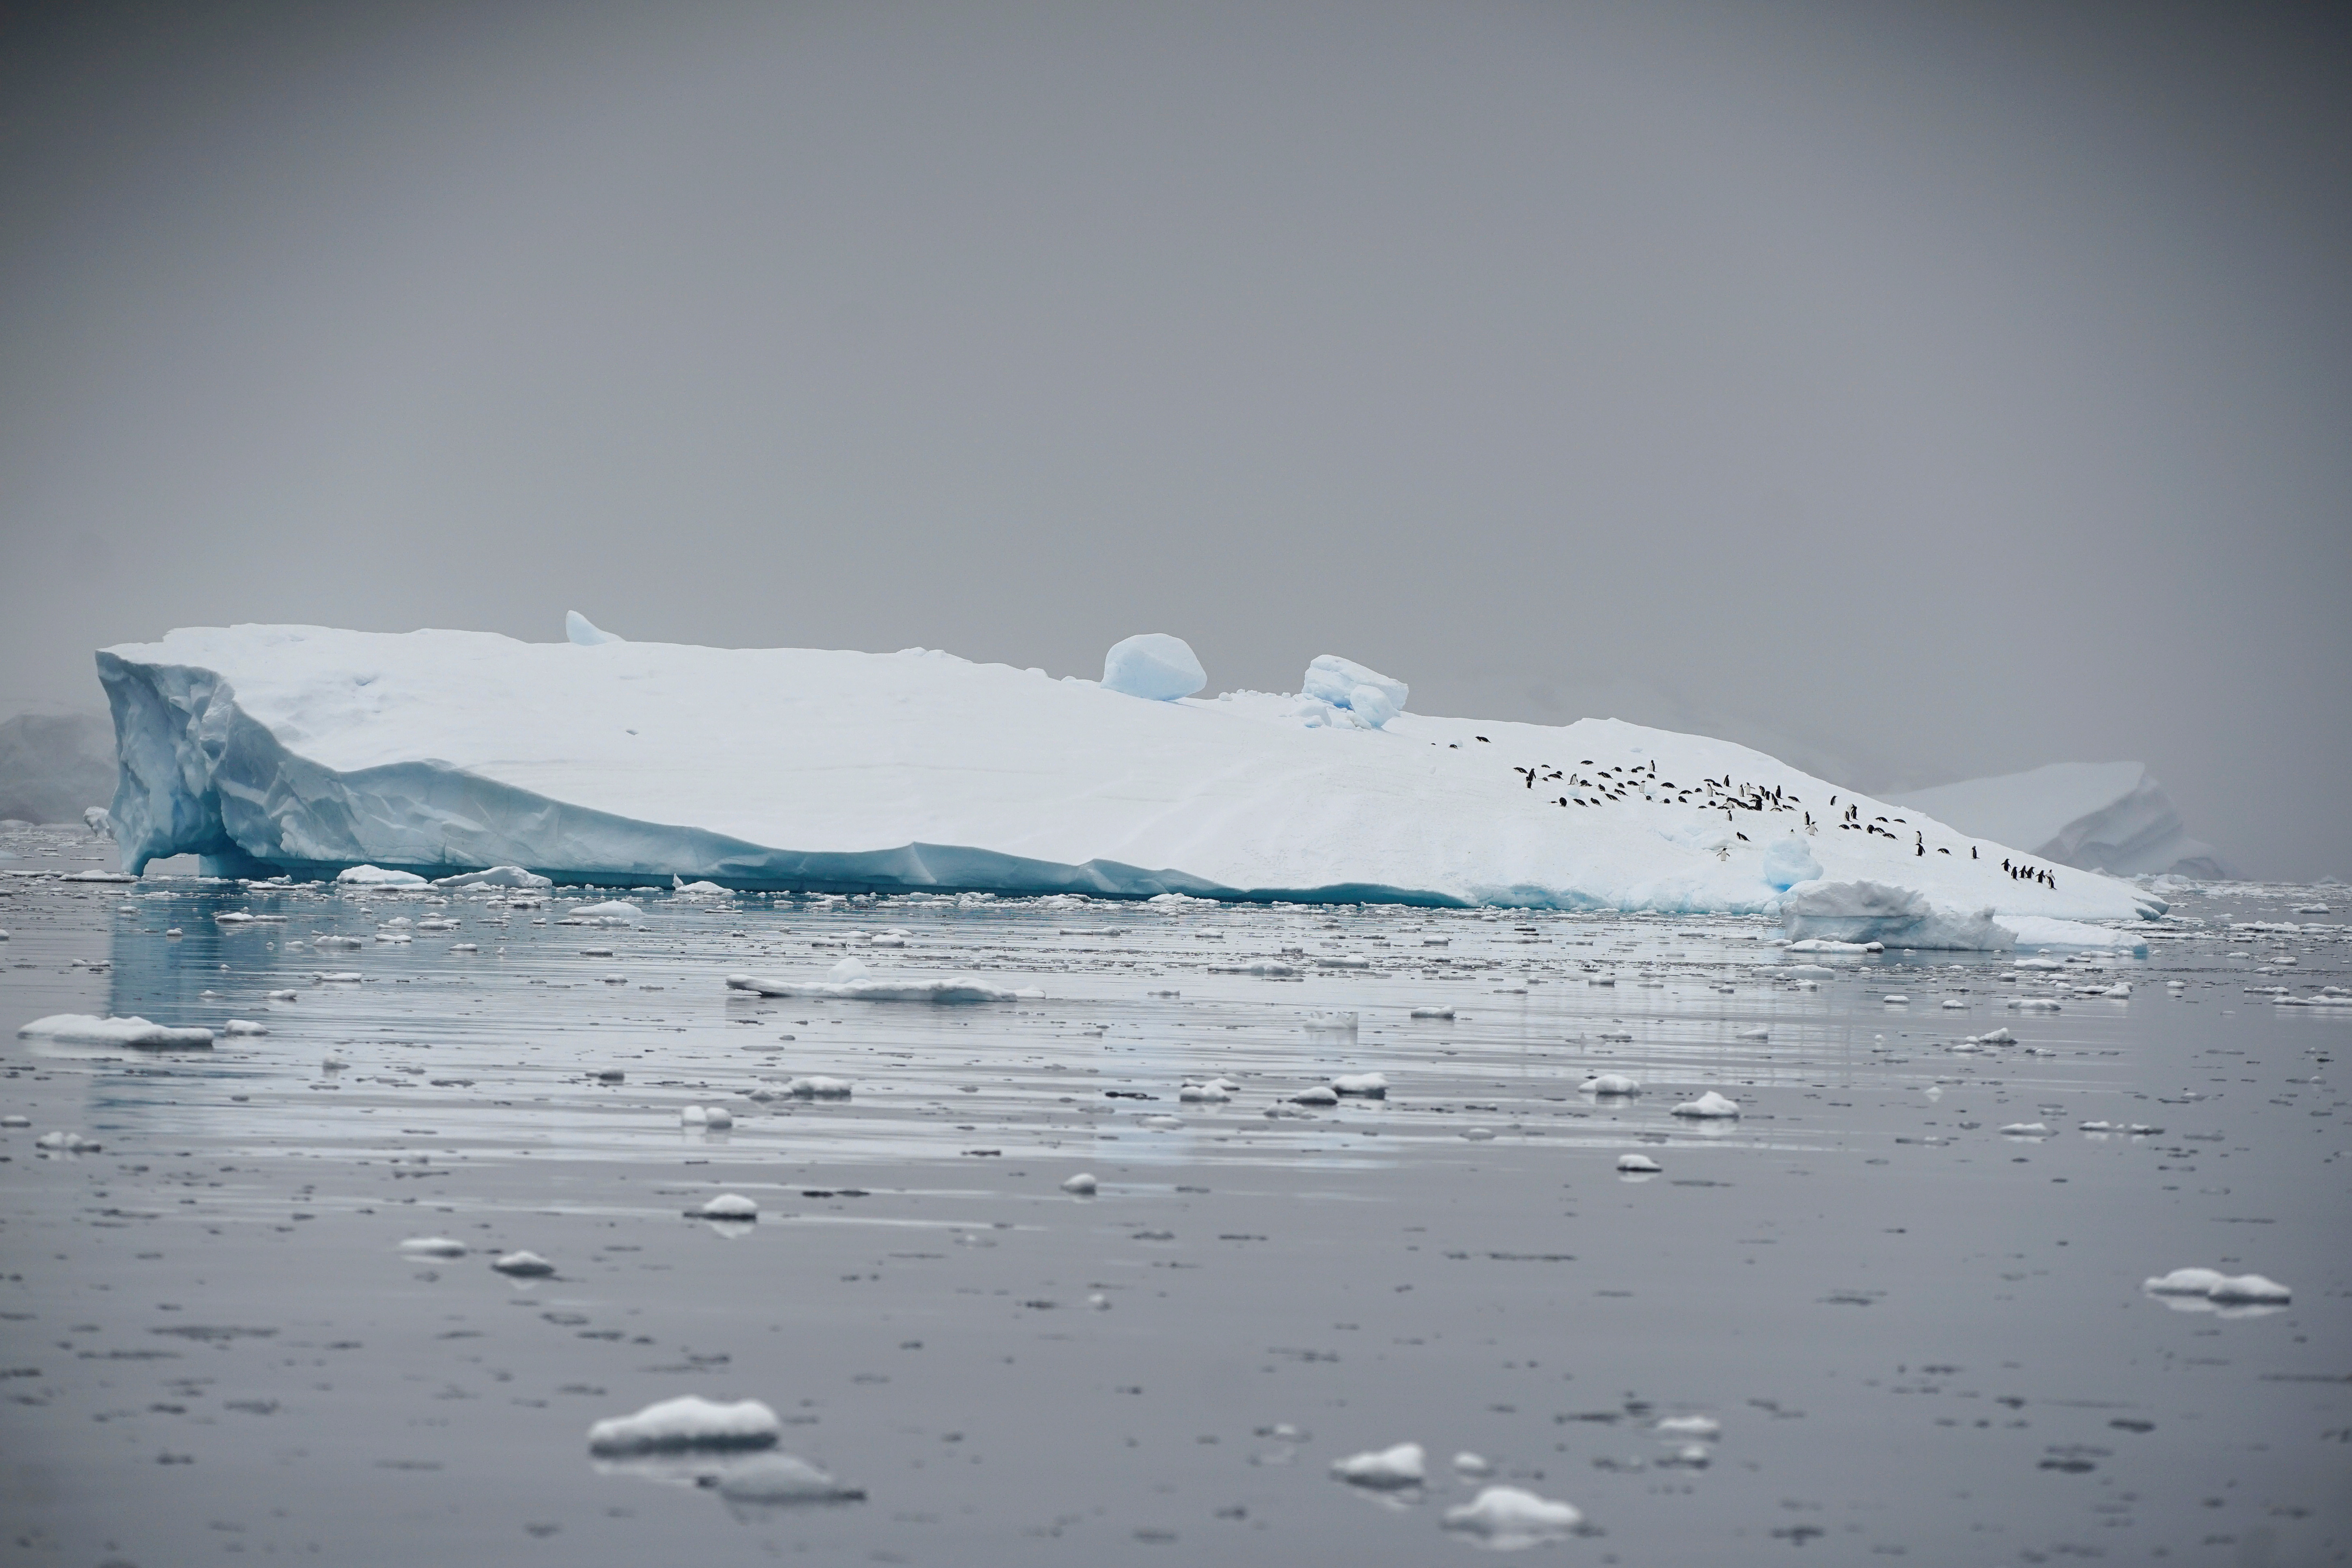 There's a crazy plan to tow an iceberg from Antarctica to fix Cape Town's water crisis